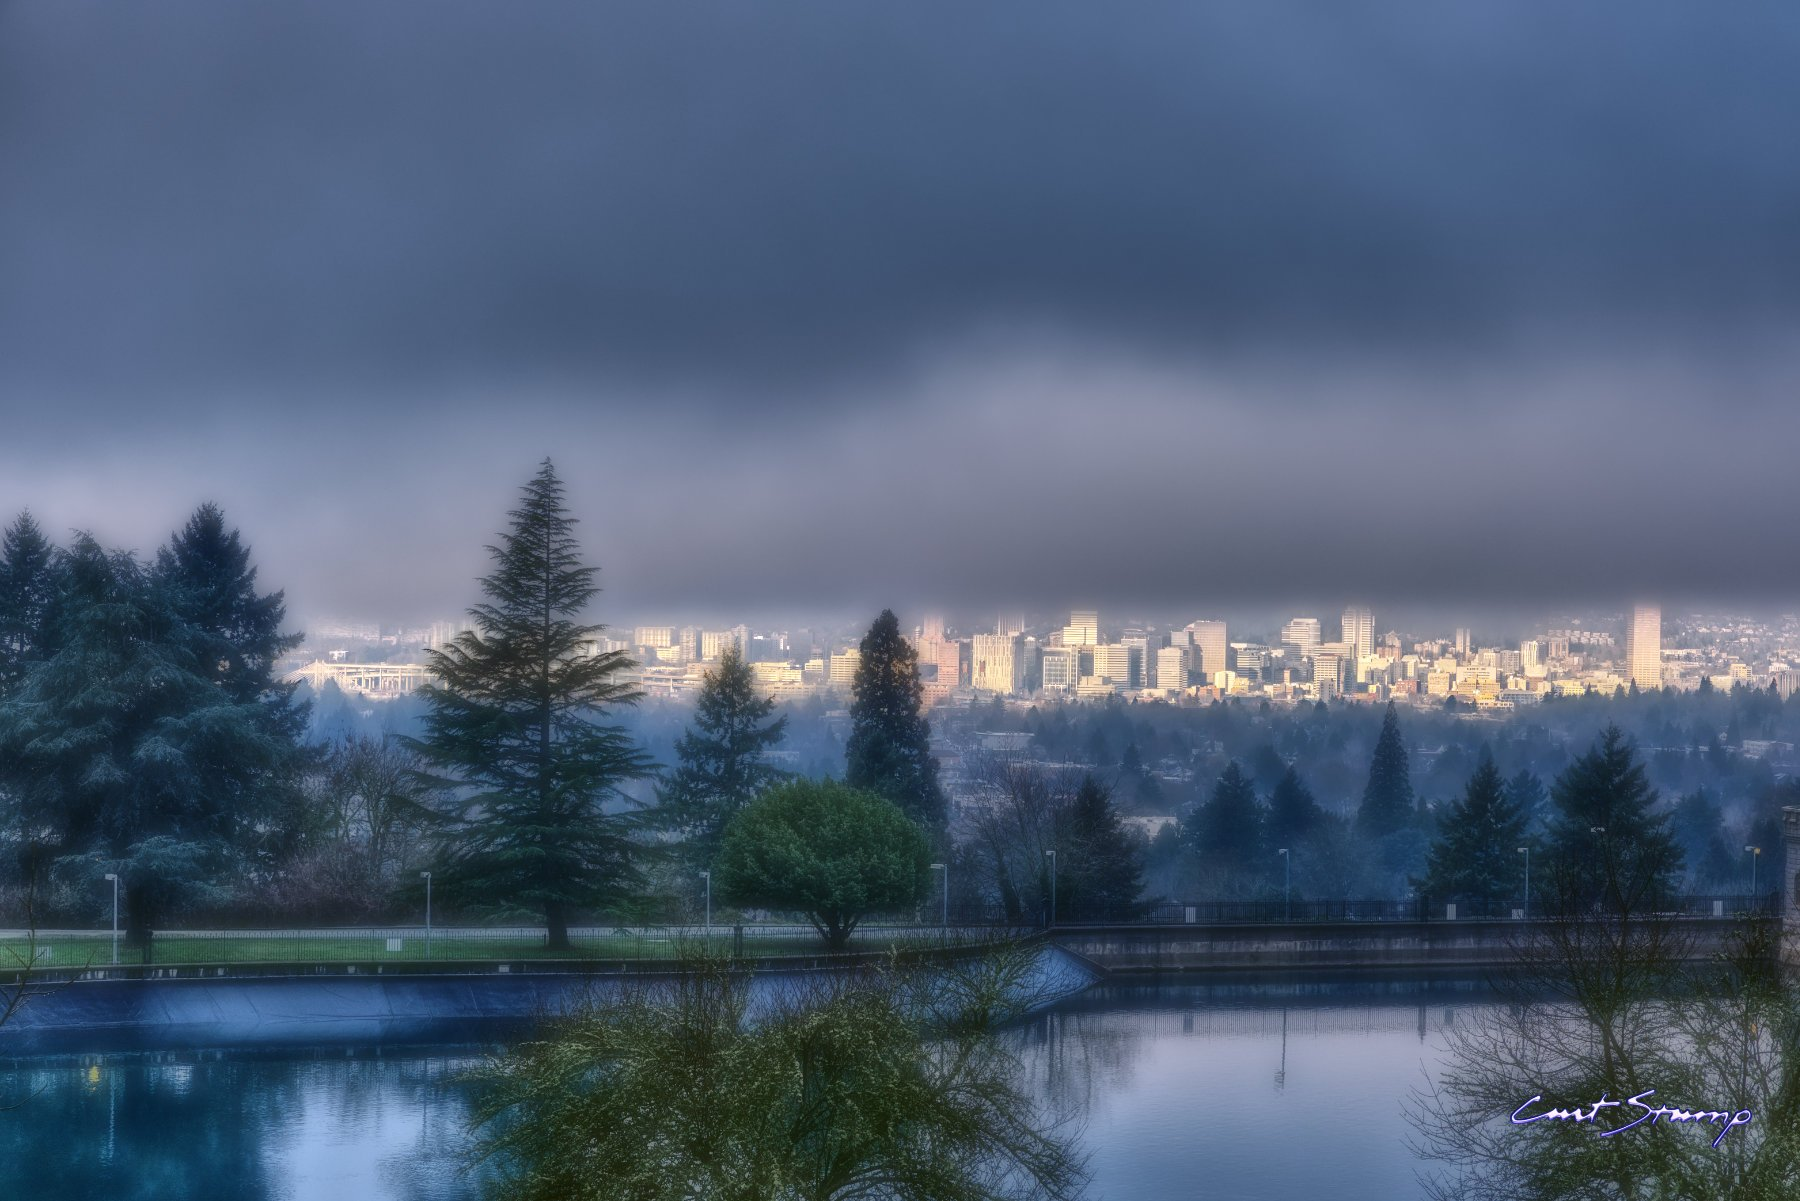 Portland, Oregon, as seen from Mount Tabor park. Dark grey storm clouds and a brightly lit downtown Portland city skyline with buildings. Artificial reservoir and walkway in foreground.